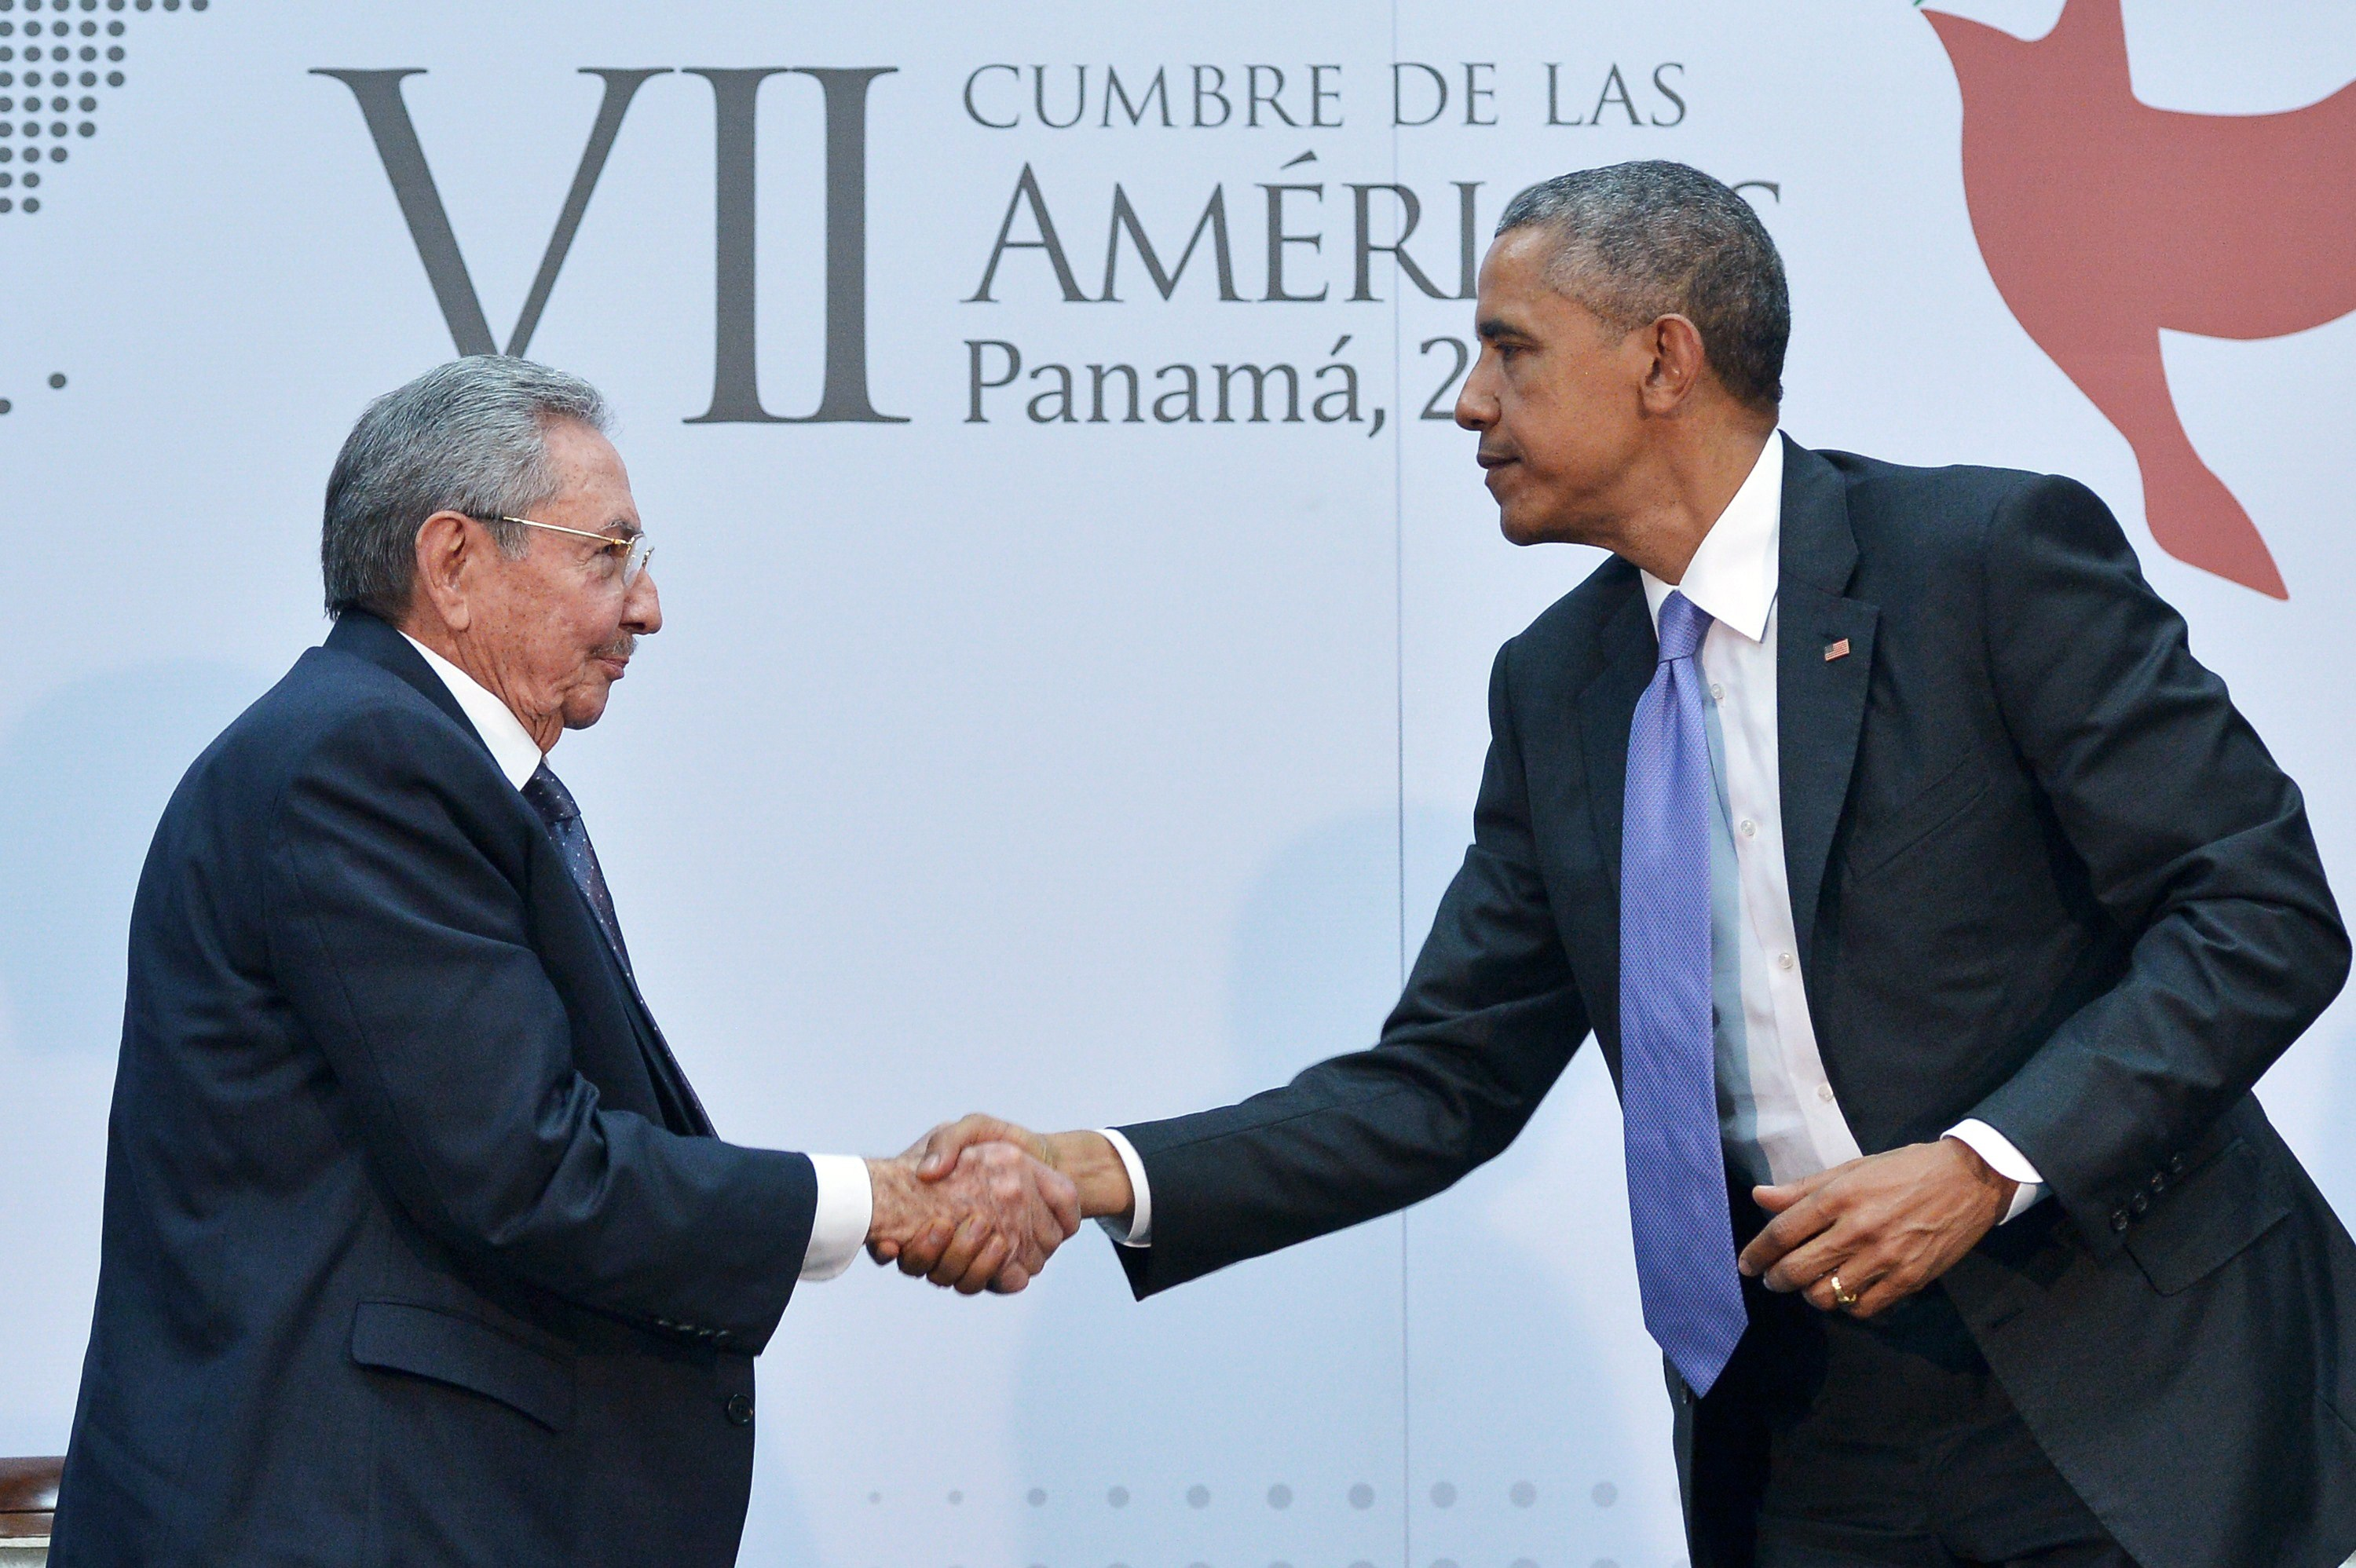 Raoul Castro and Barack Obama shake hands at the Summit of the Americas.